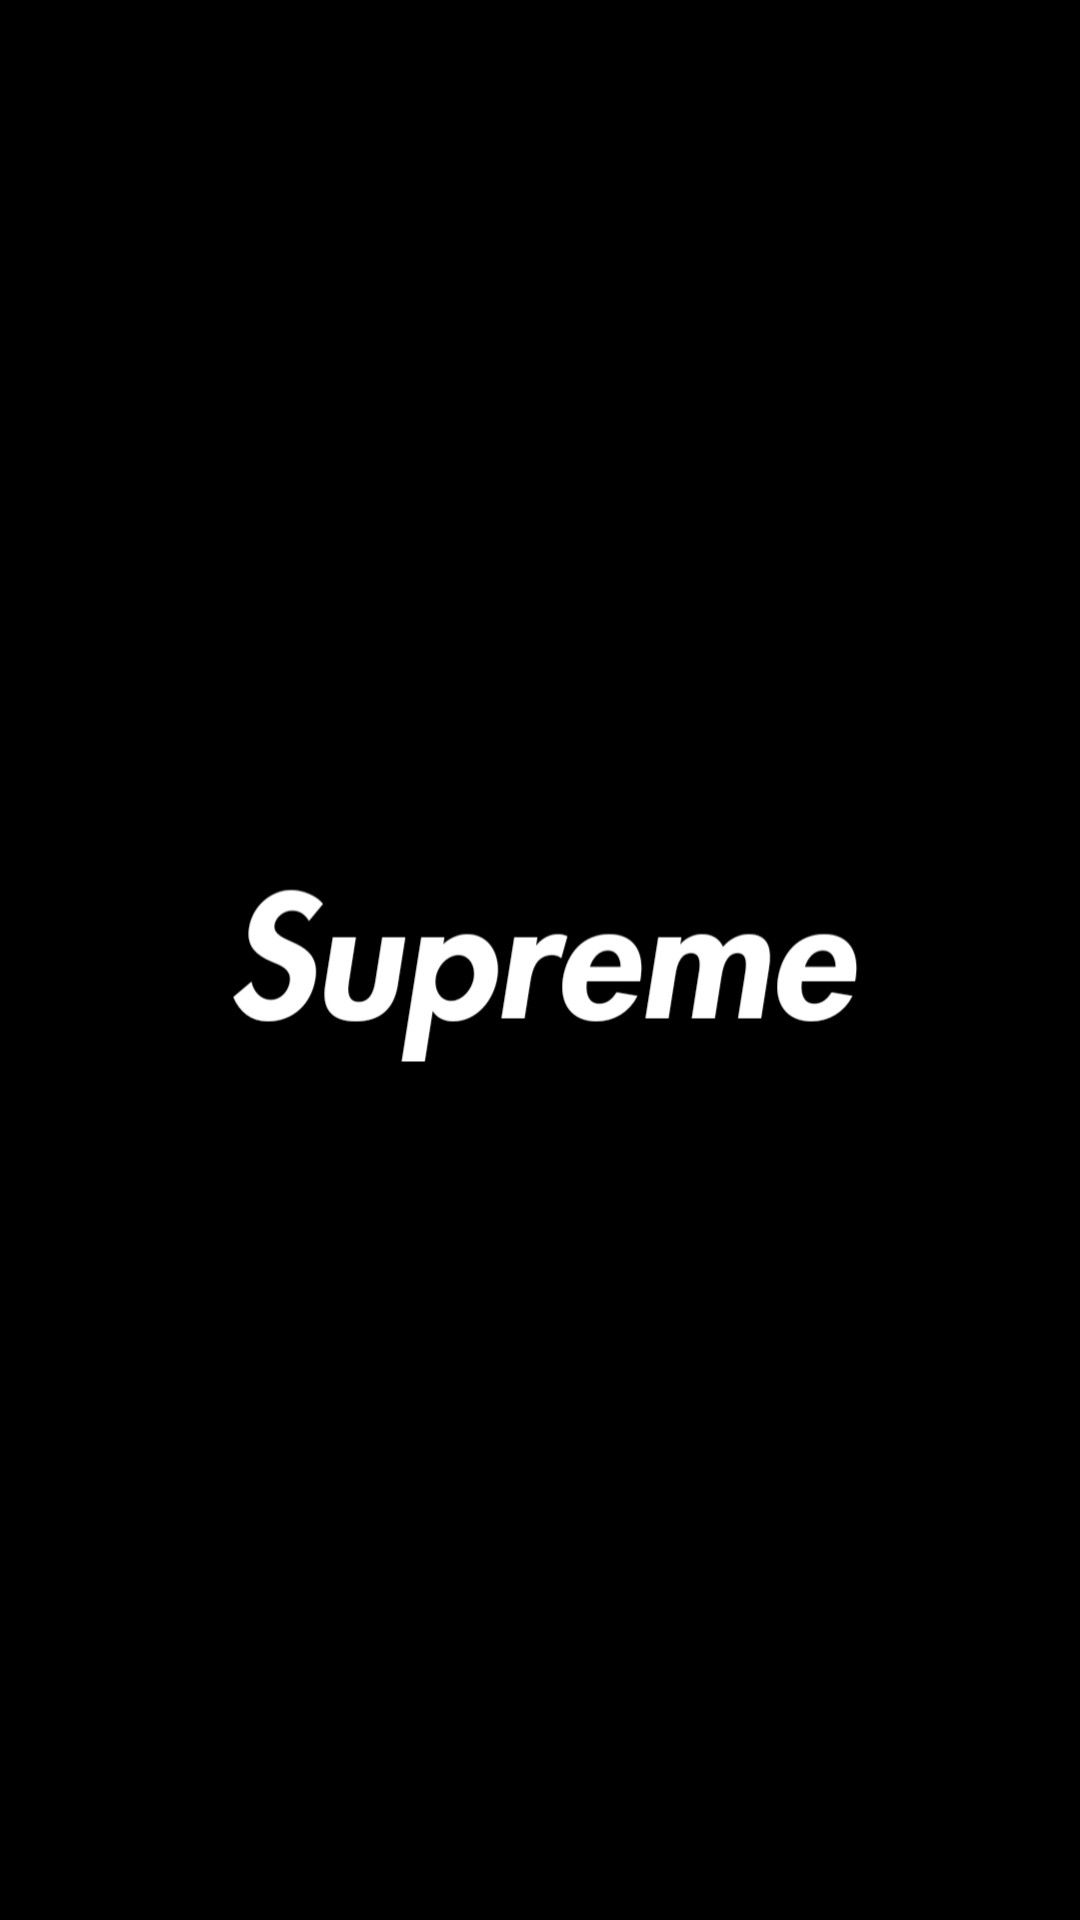 Supreme Logo Wallpaper Supreme Iphone Wallpaper Supreme Wallpaper Logo Wallpaper Hd